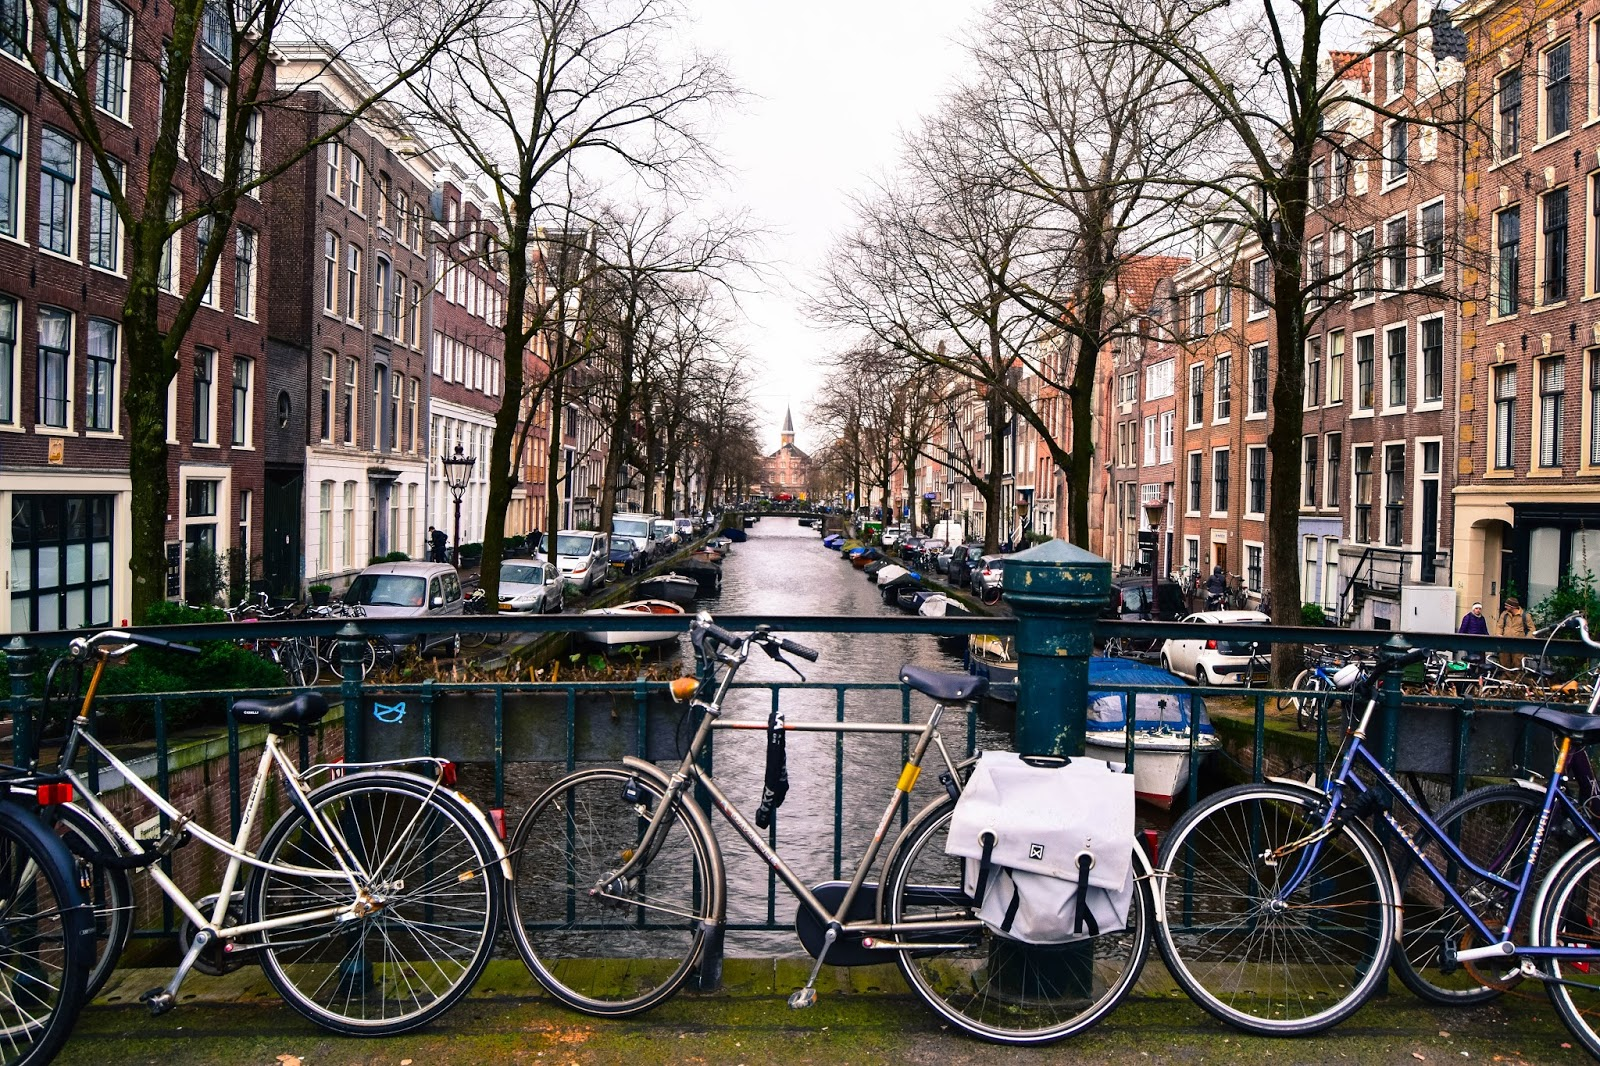 Amsterdam in January